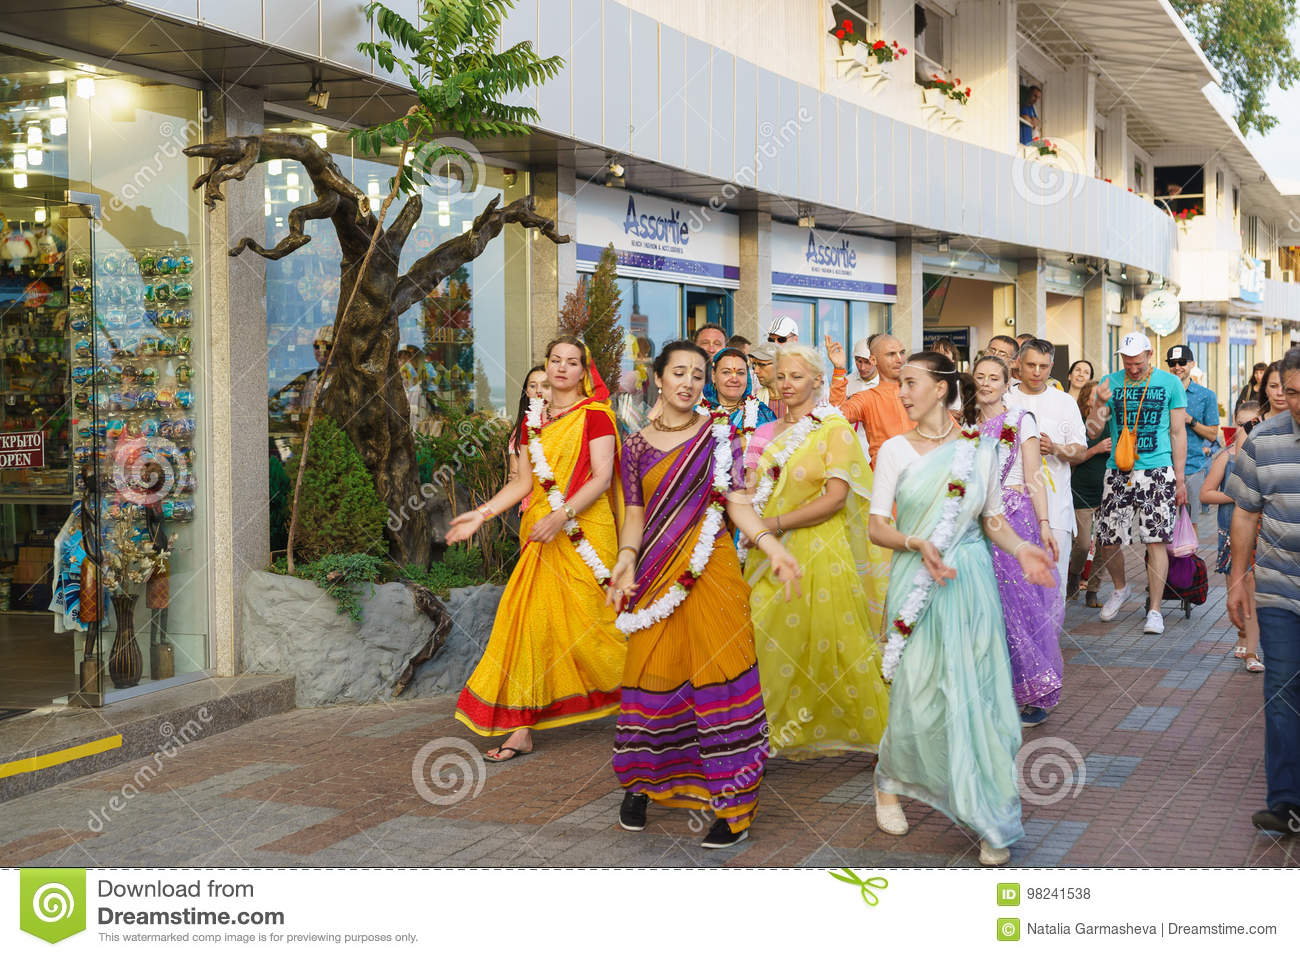 A Group of hare Krishnas singing and dancing are on the embankment of the resort town